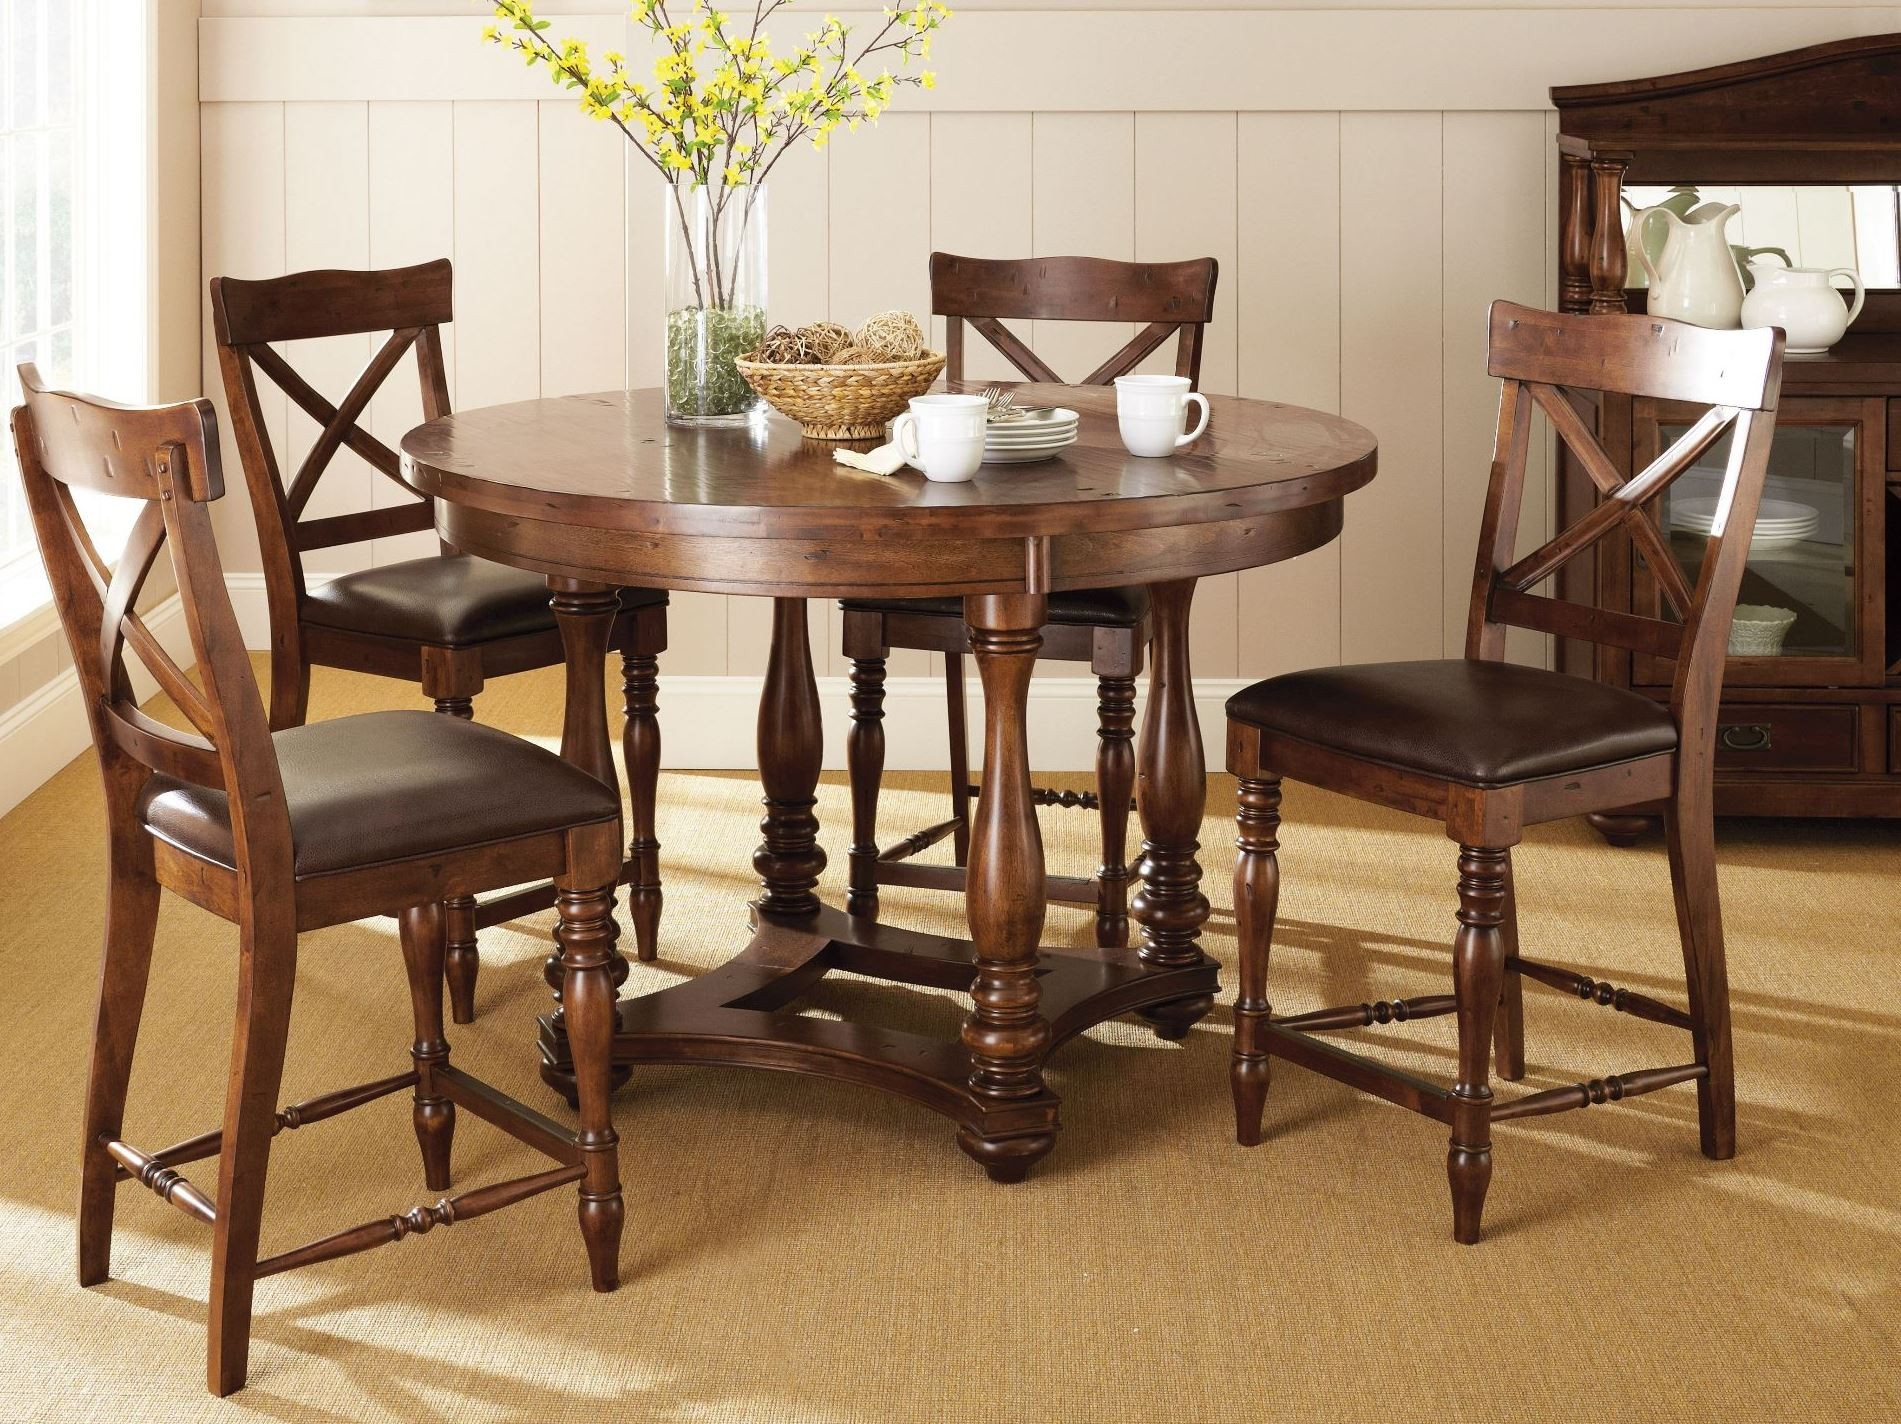 Wyndham medium cherry counter height dining room set from for Cherry dining room set